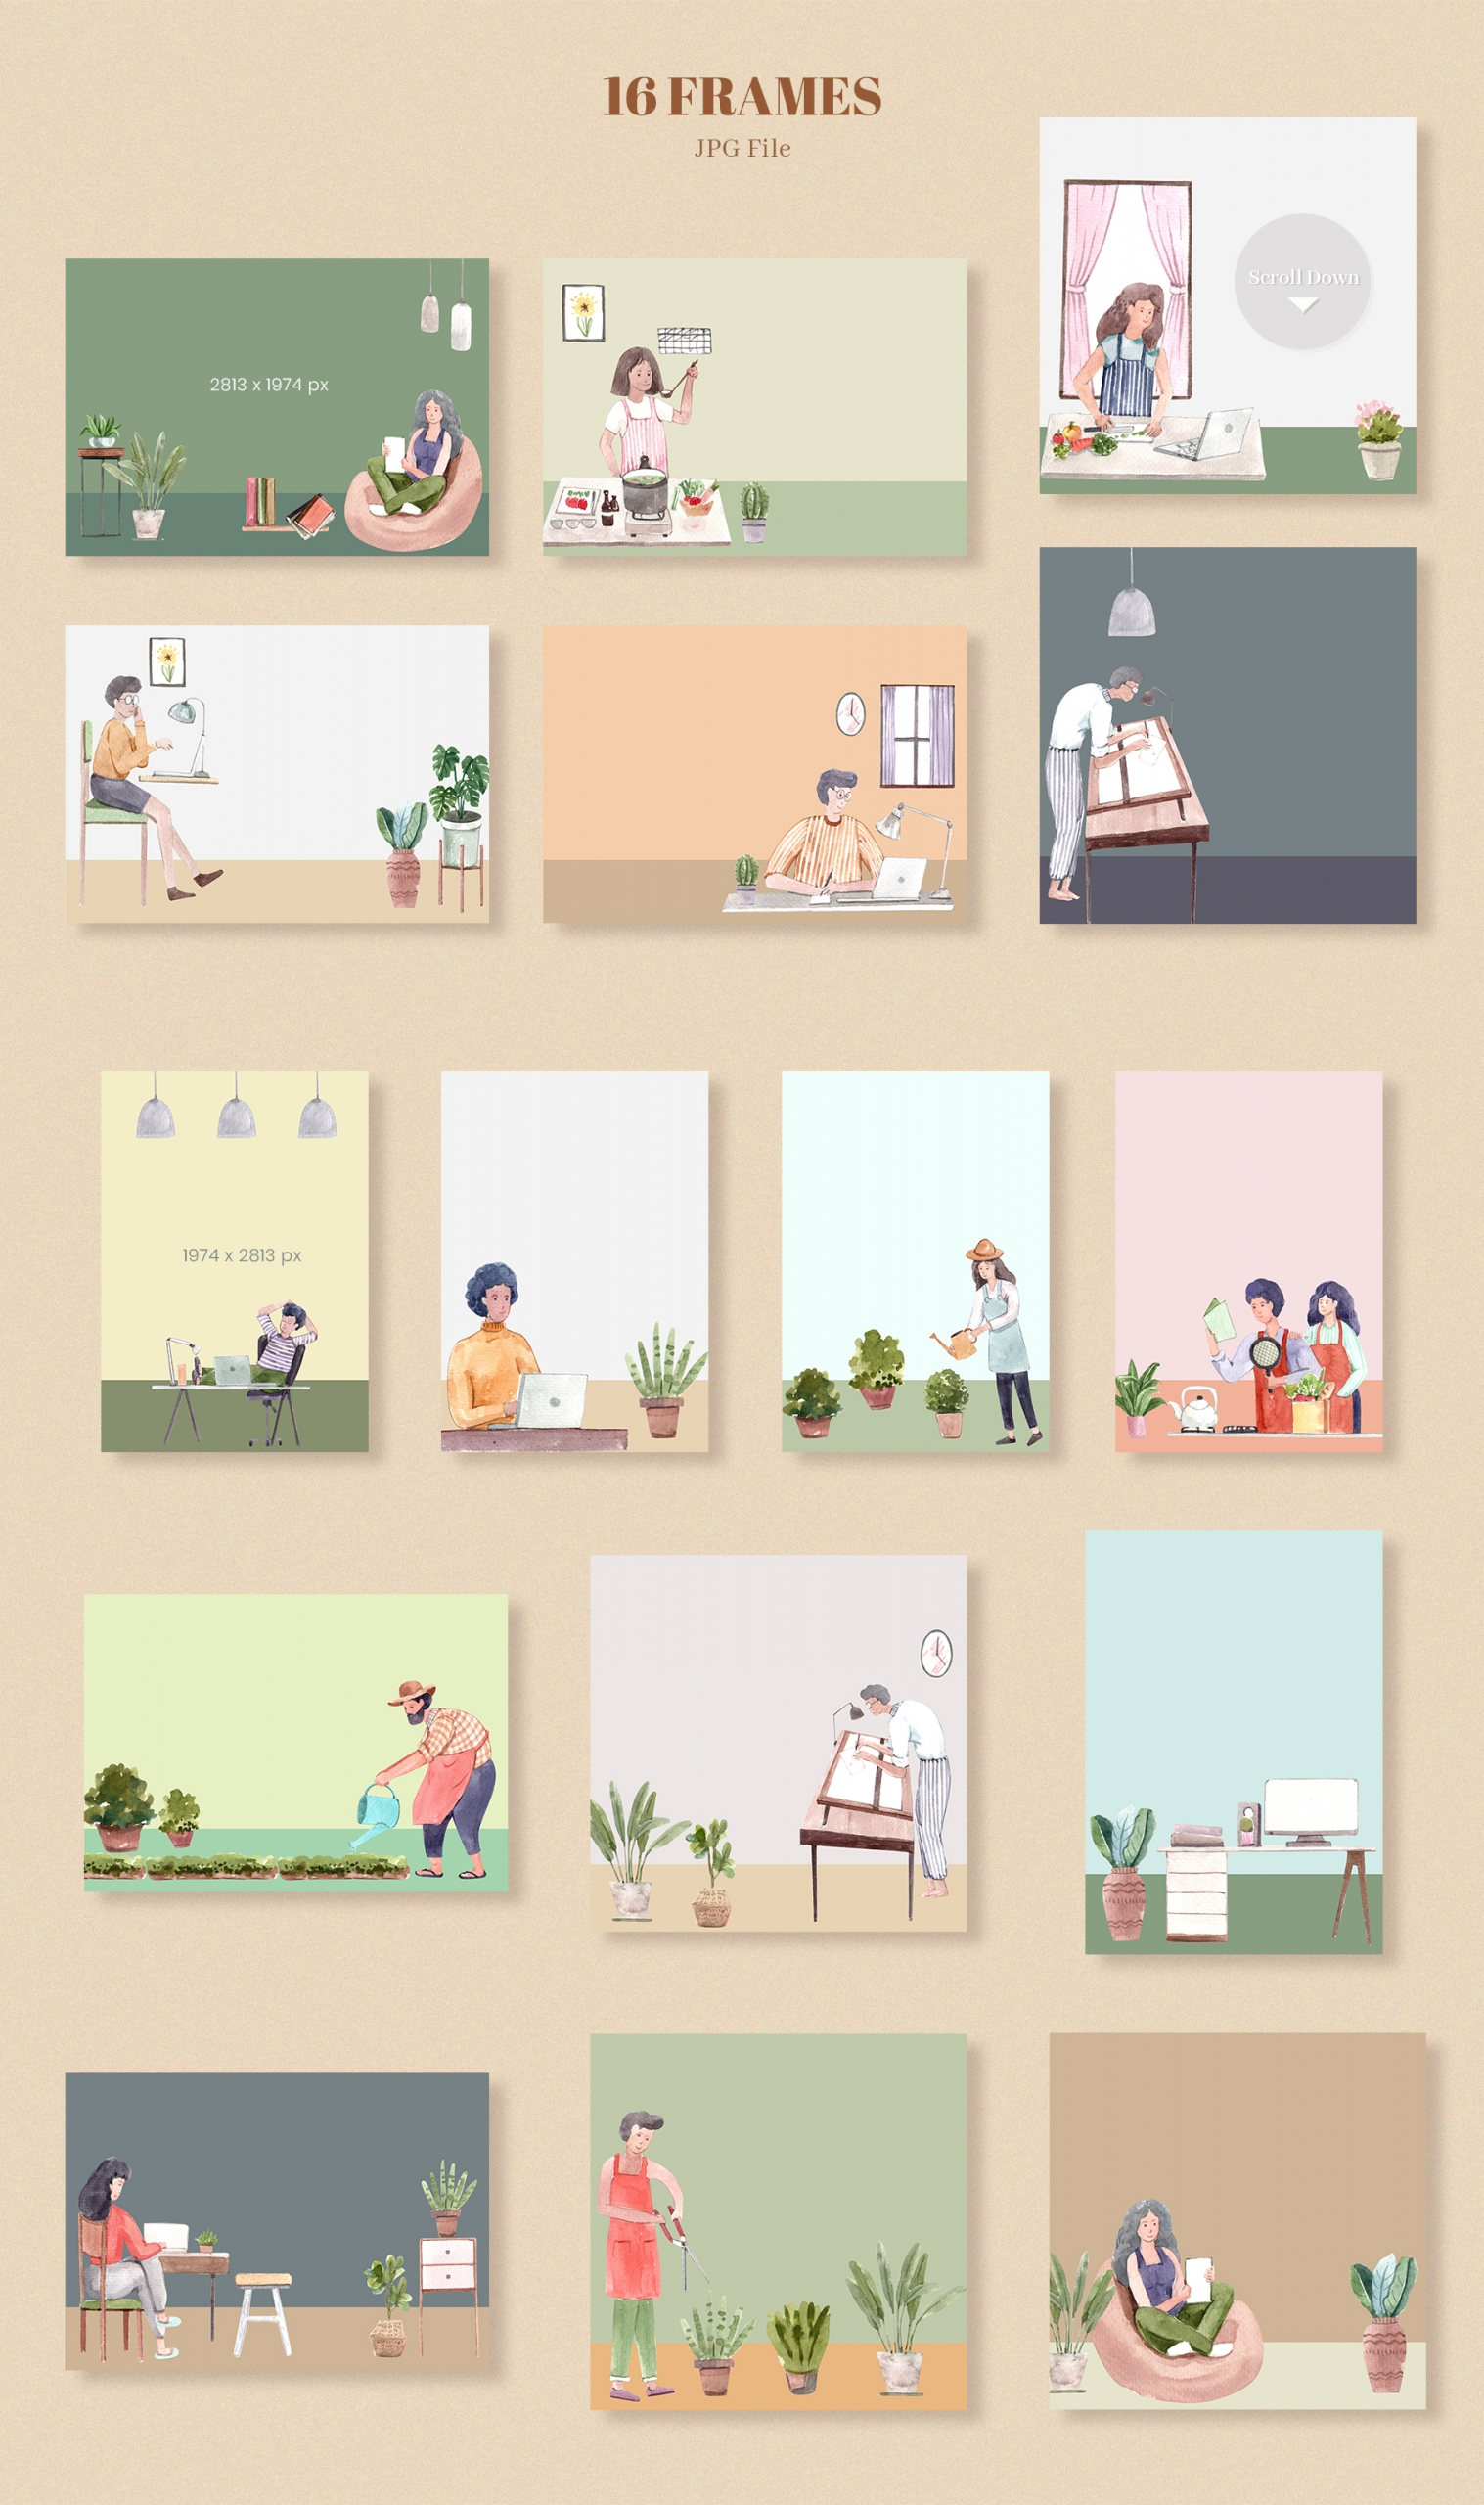 Work from Home - People Watercolor Illustration